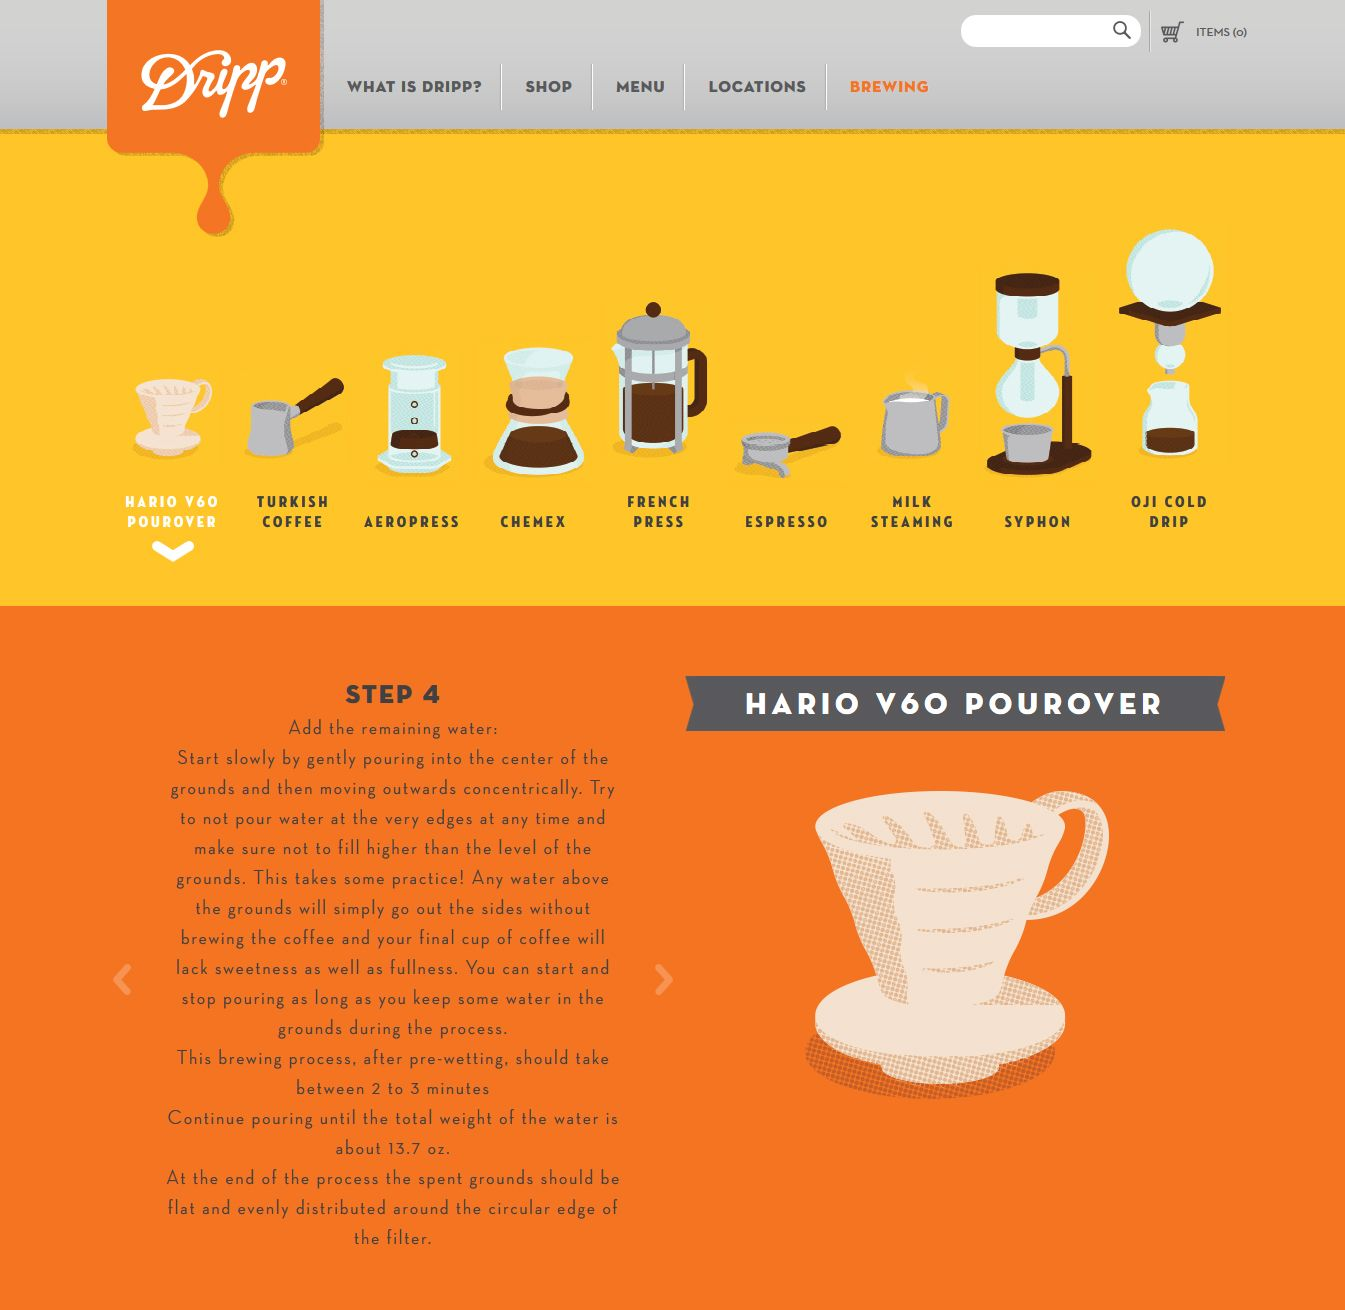 Hario V60 Pourover Dripp Coffee Brewing Guide Pinterest